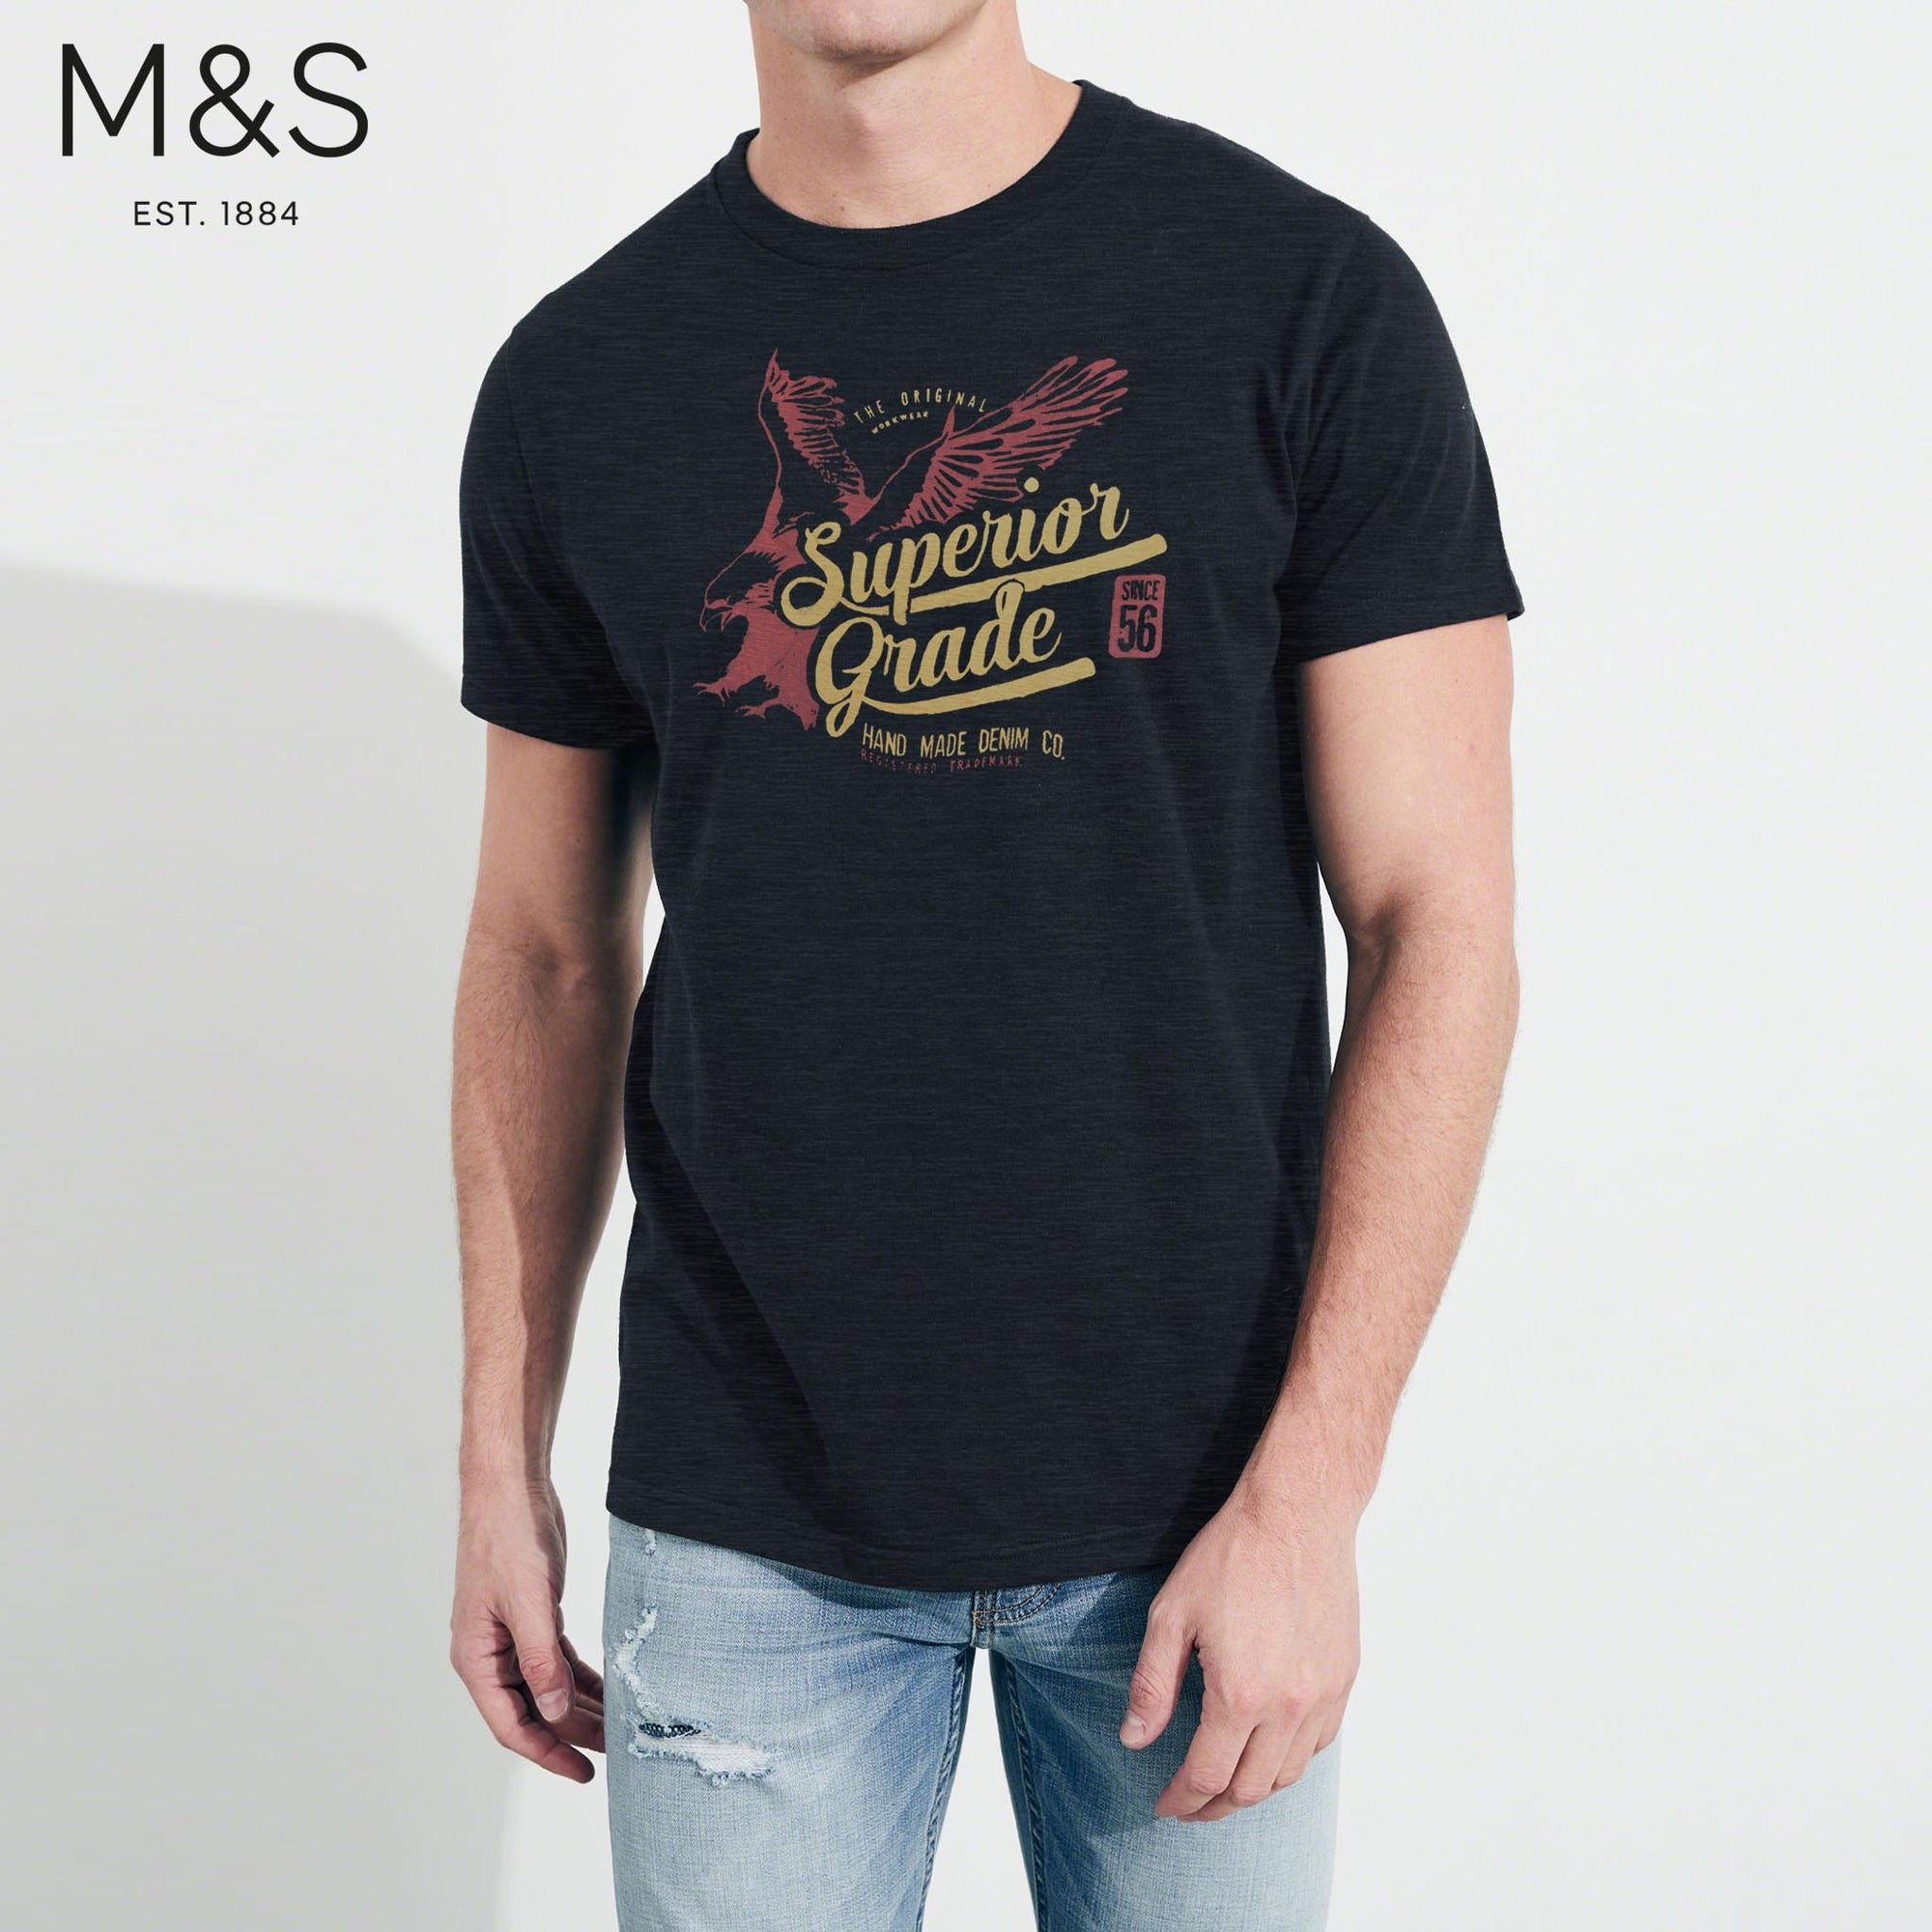 M&S Crew Neck T Shirt For Men-Dark Navy Melange-BE4338